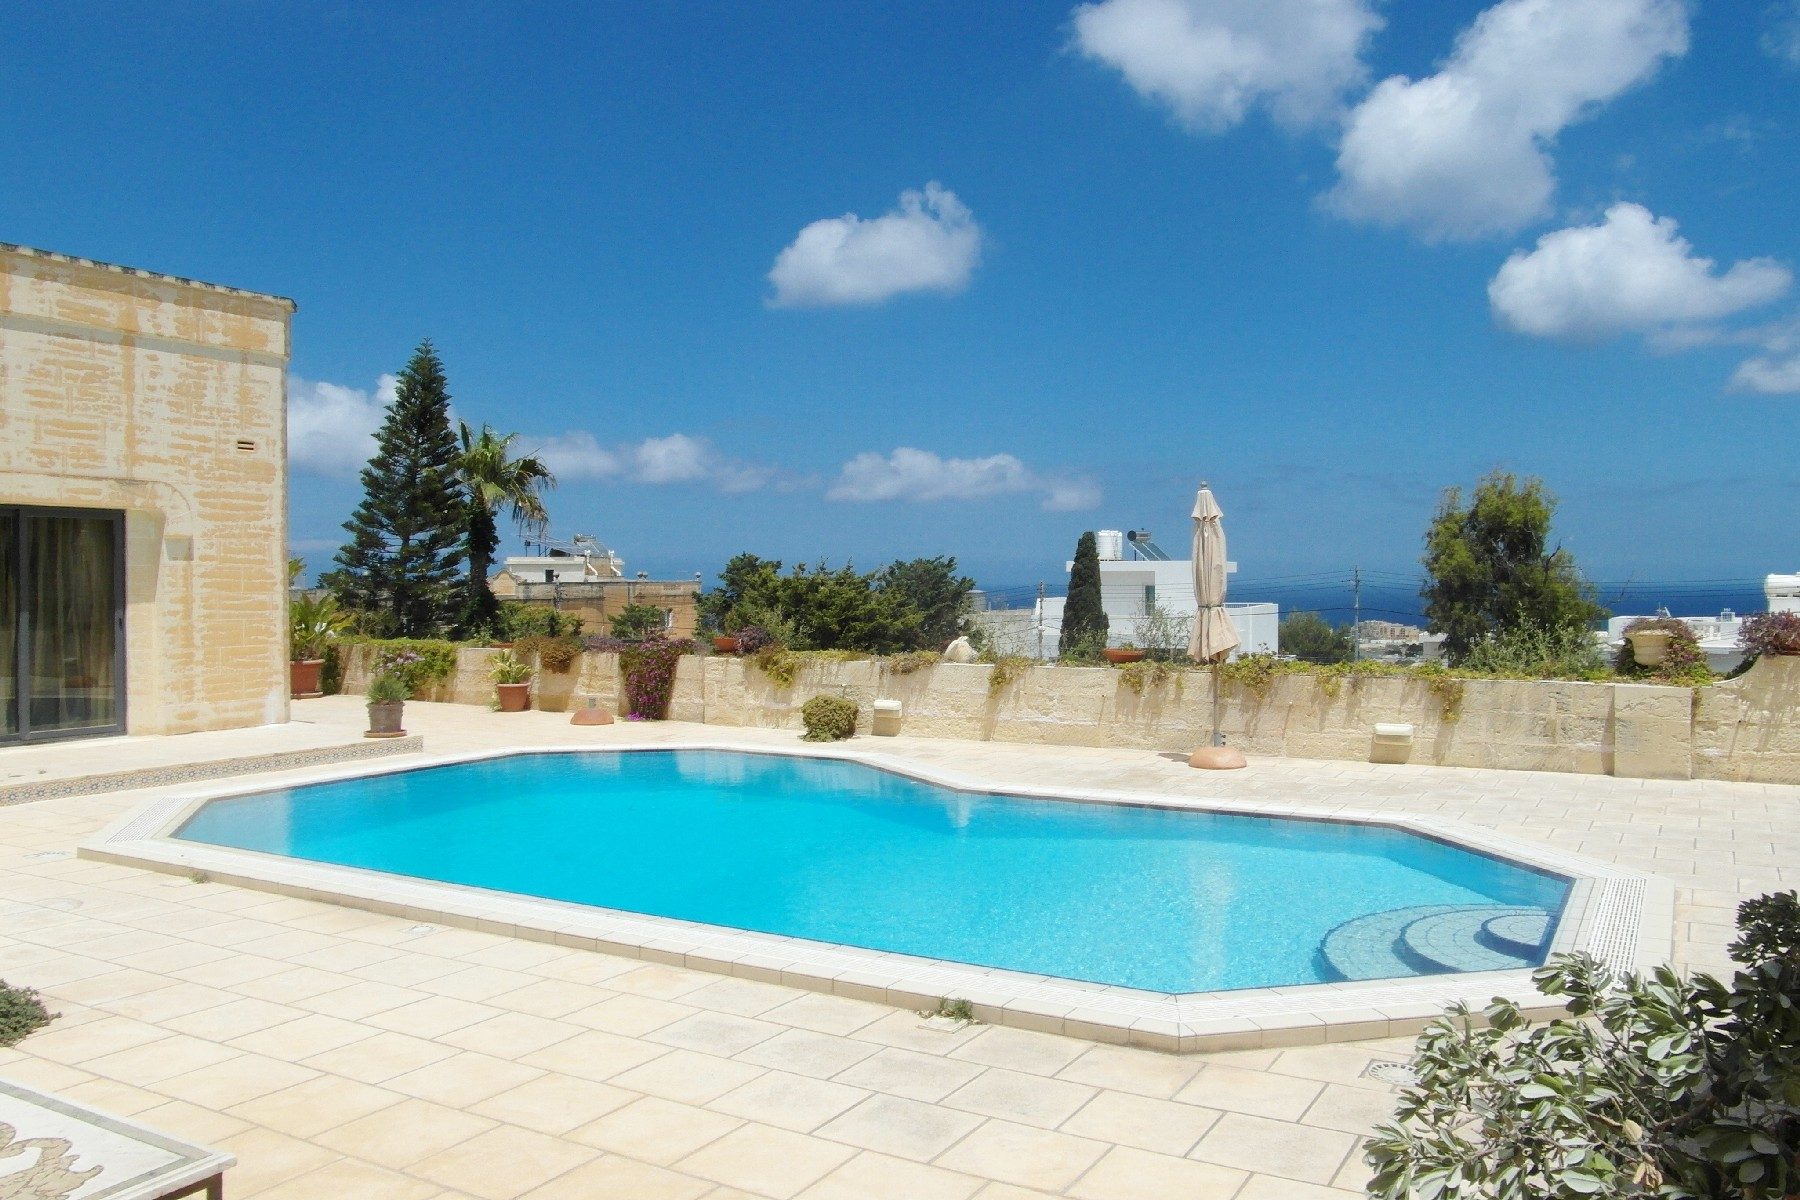 Single Family Home for Rent at Lavish Fully Detached Bungalow Madliena, Malta